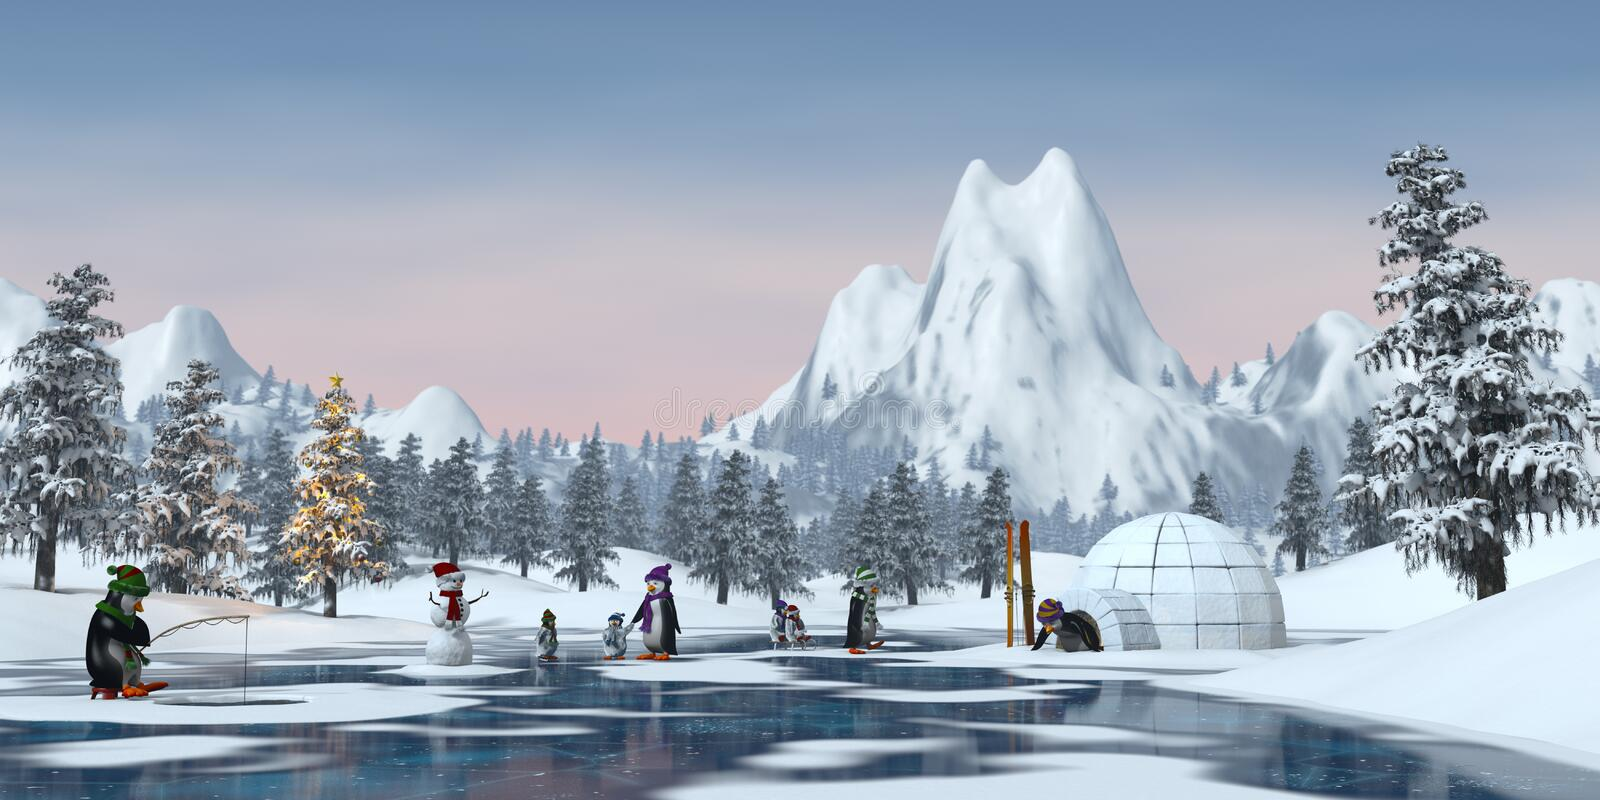 Penguins in a snowy Christmas mountain landscape, 3d render royalty free illustration